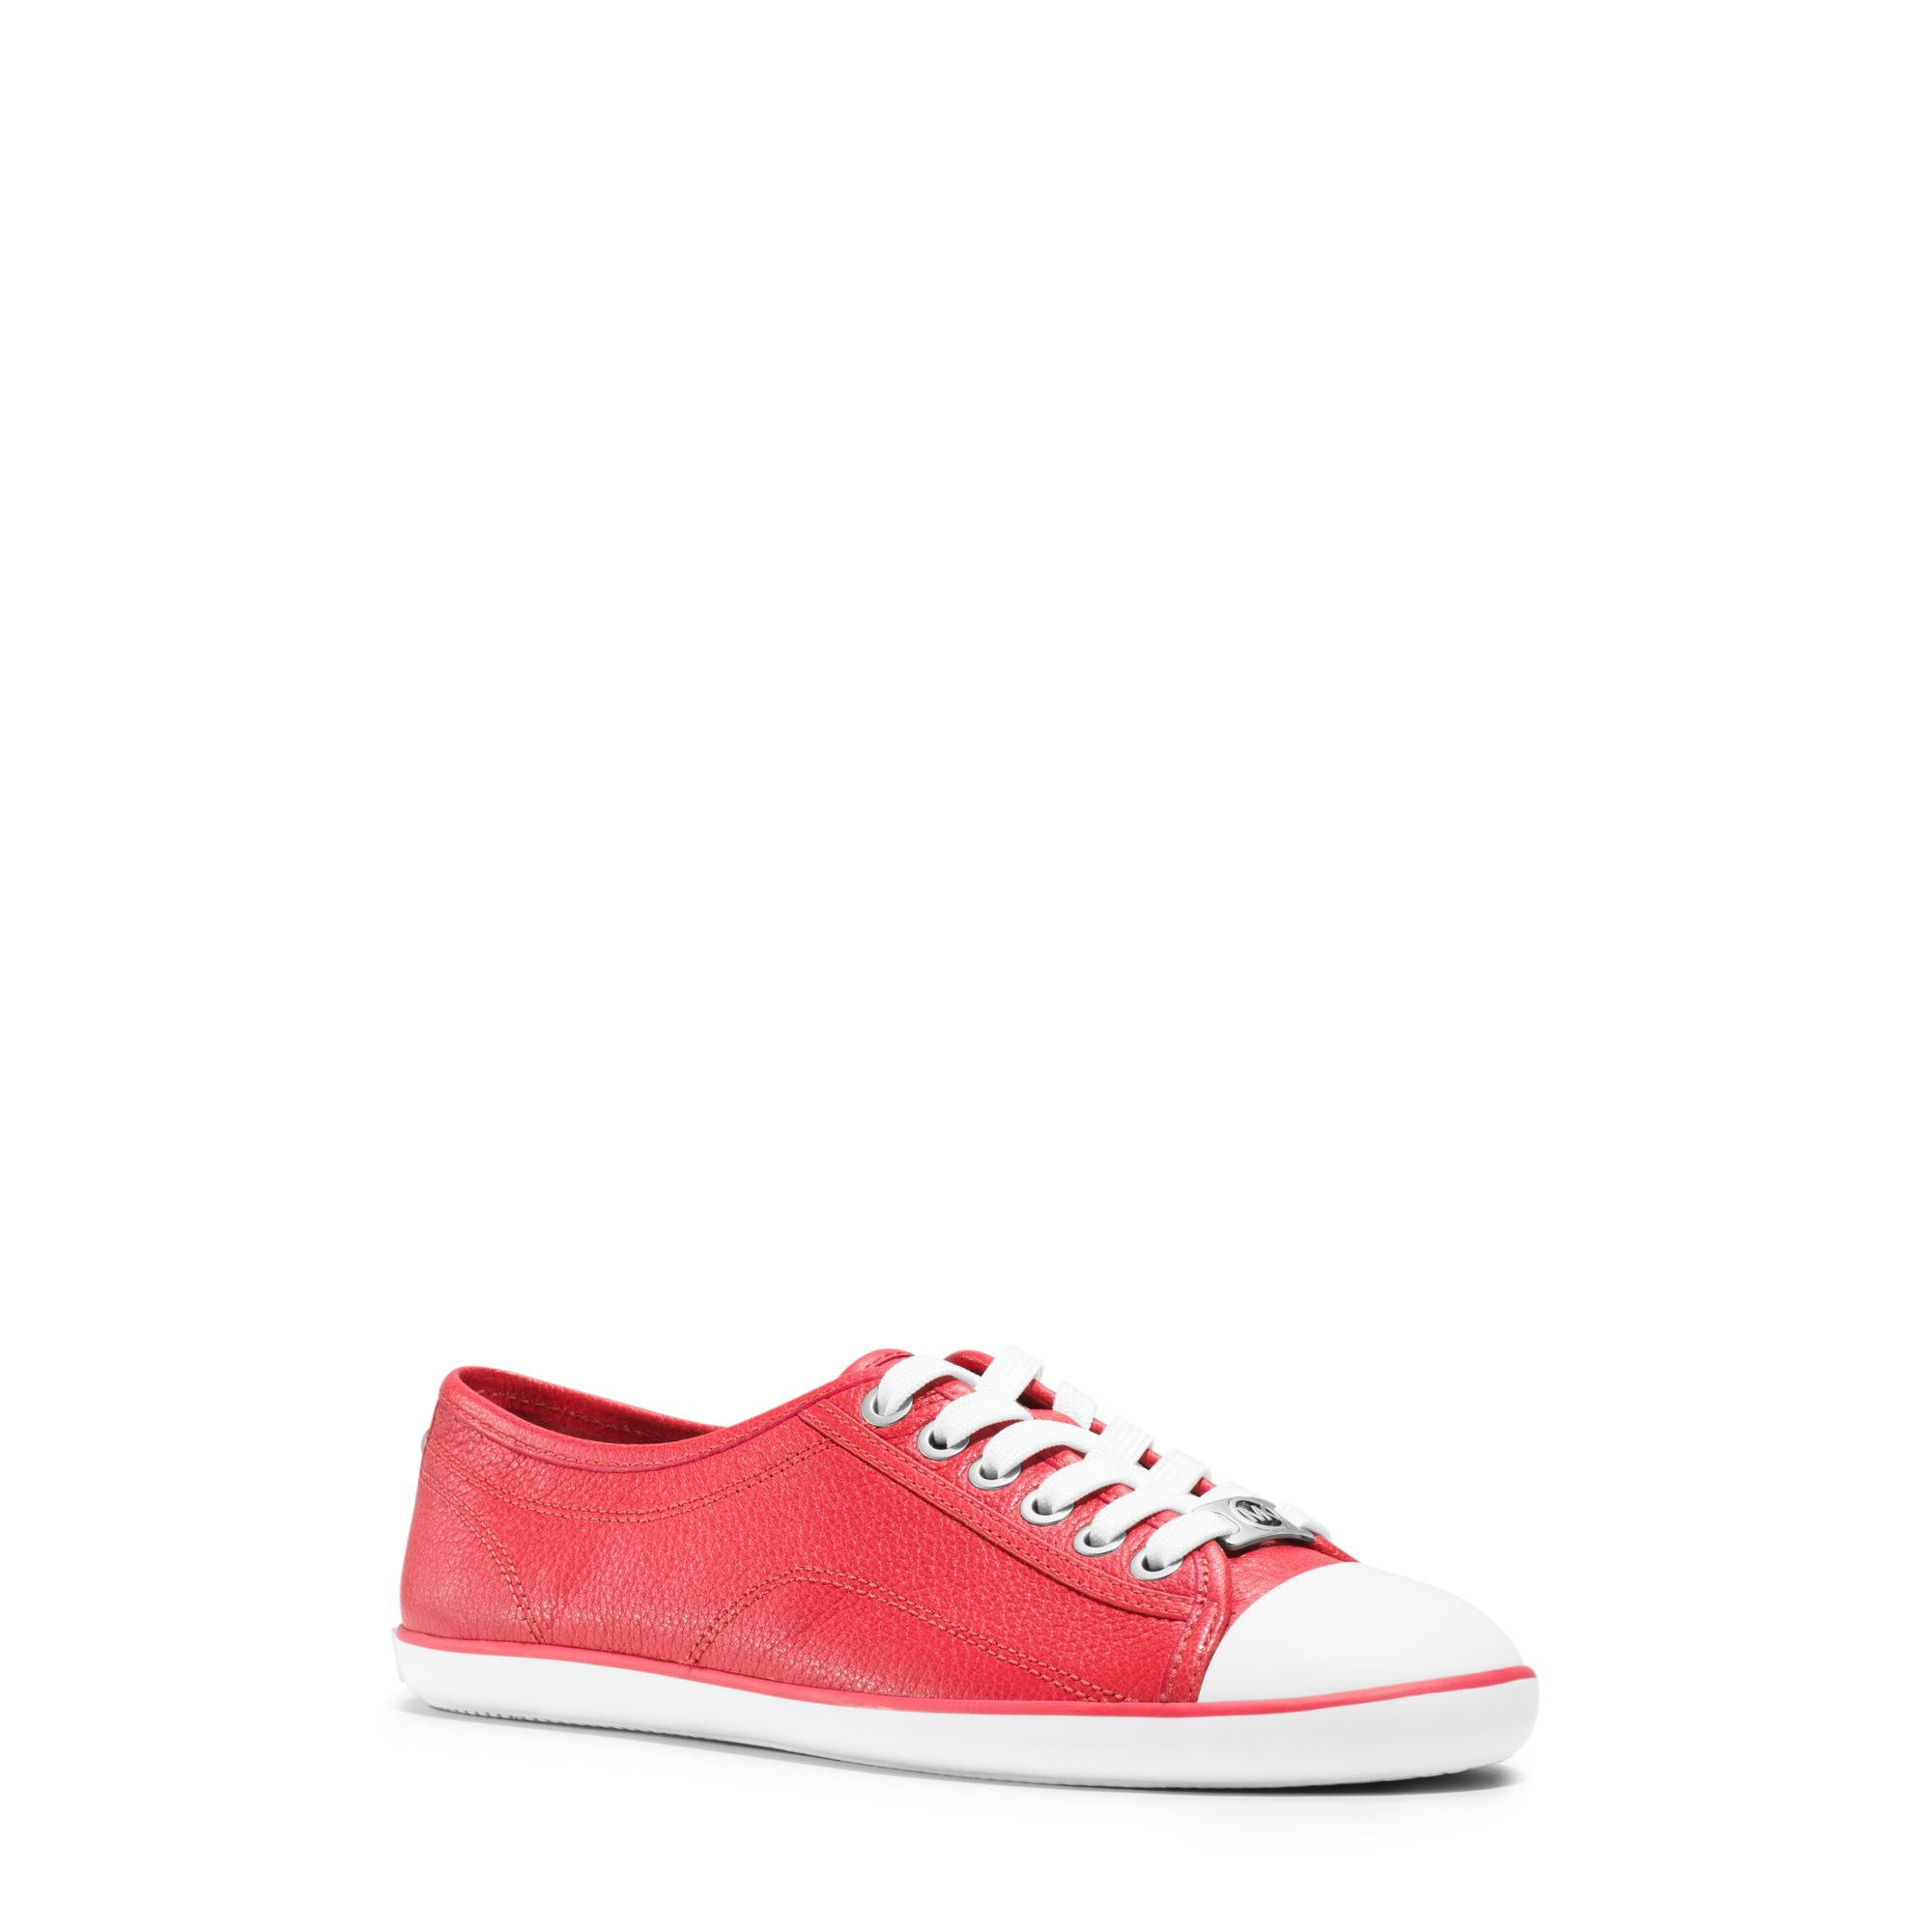 michael kors kristy leather sneaker in red lyst. Black Bedroom Furniture Sets. Home Design Ideas